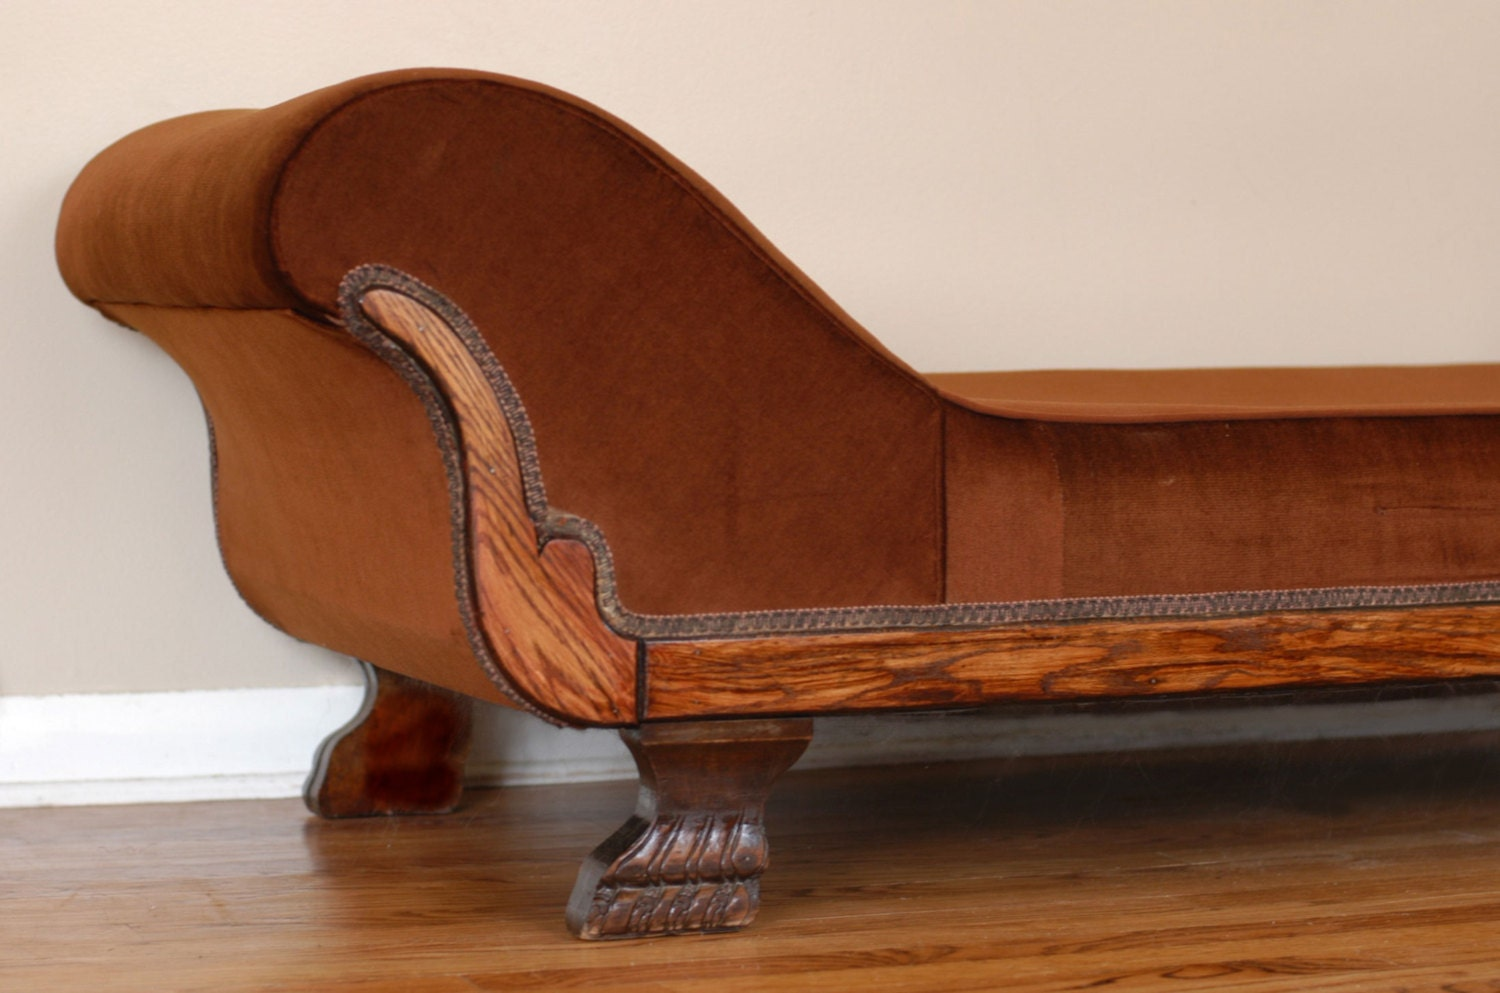 antique oak fainting couch chaise lounge by bonnbonn on etsy On antique fainting couch chaise